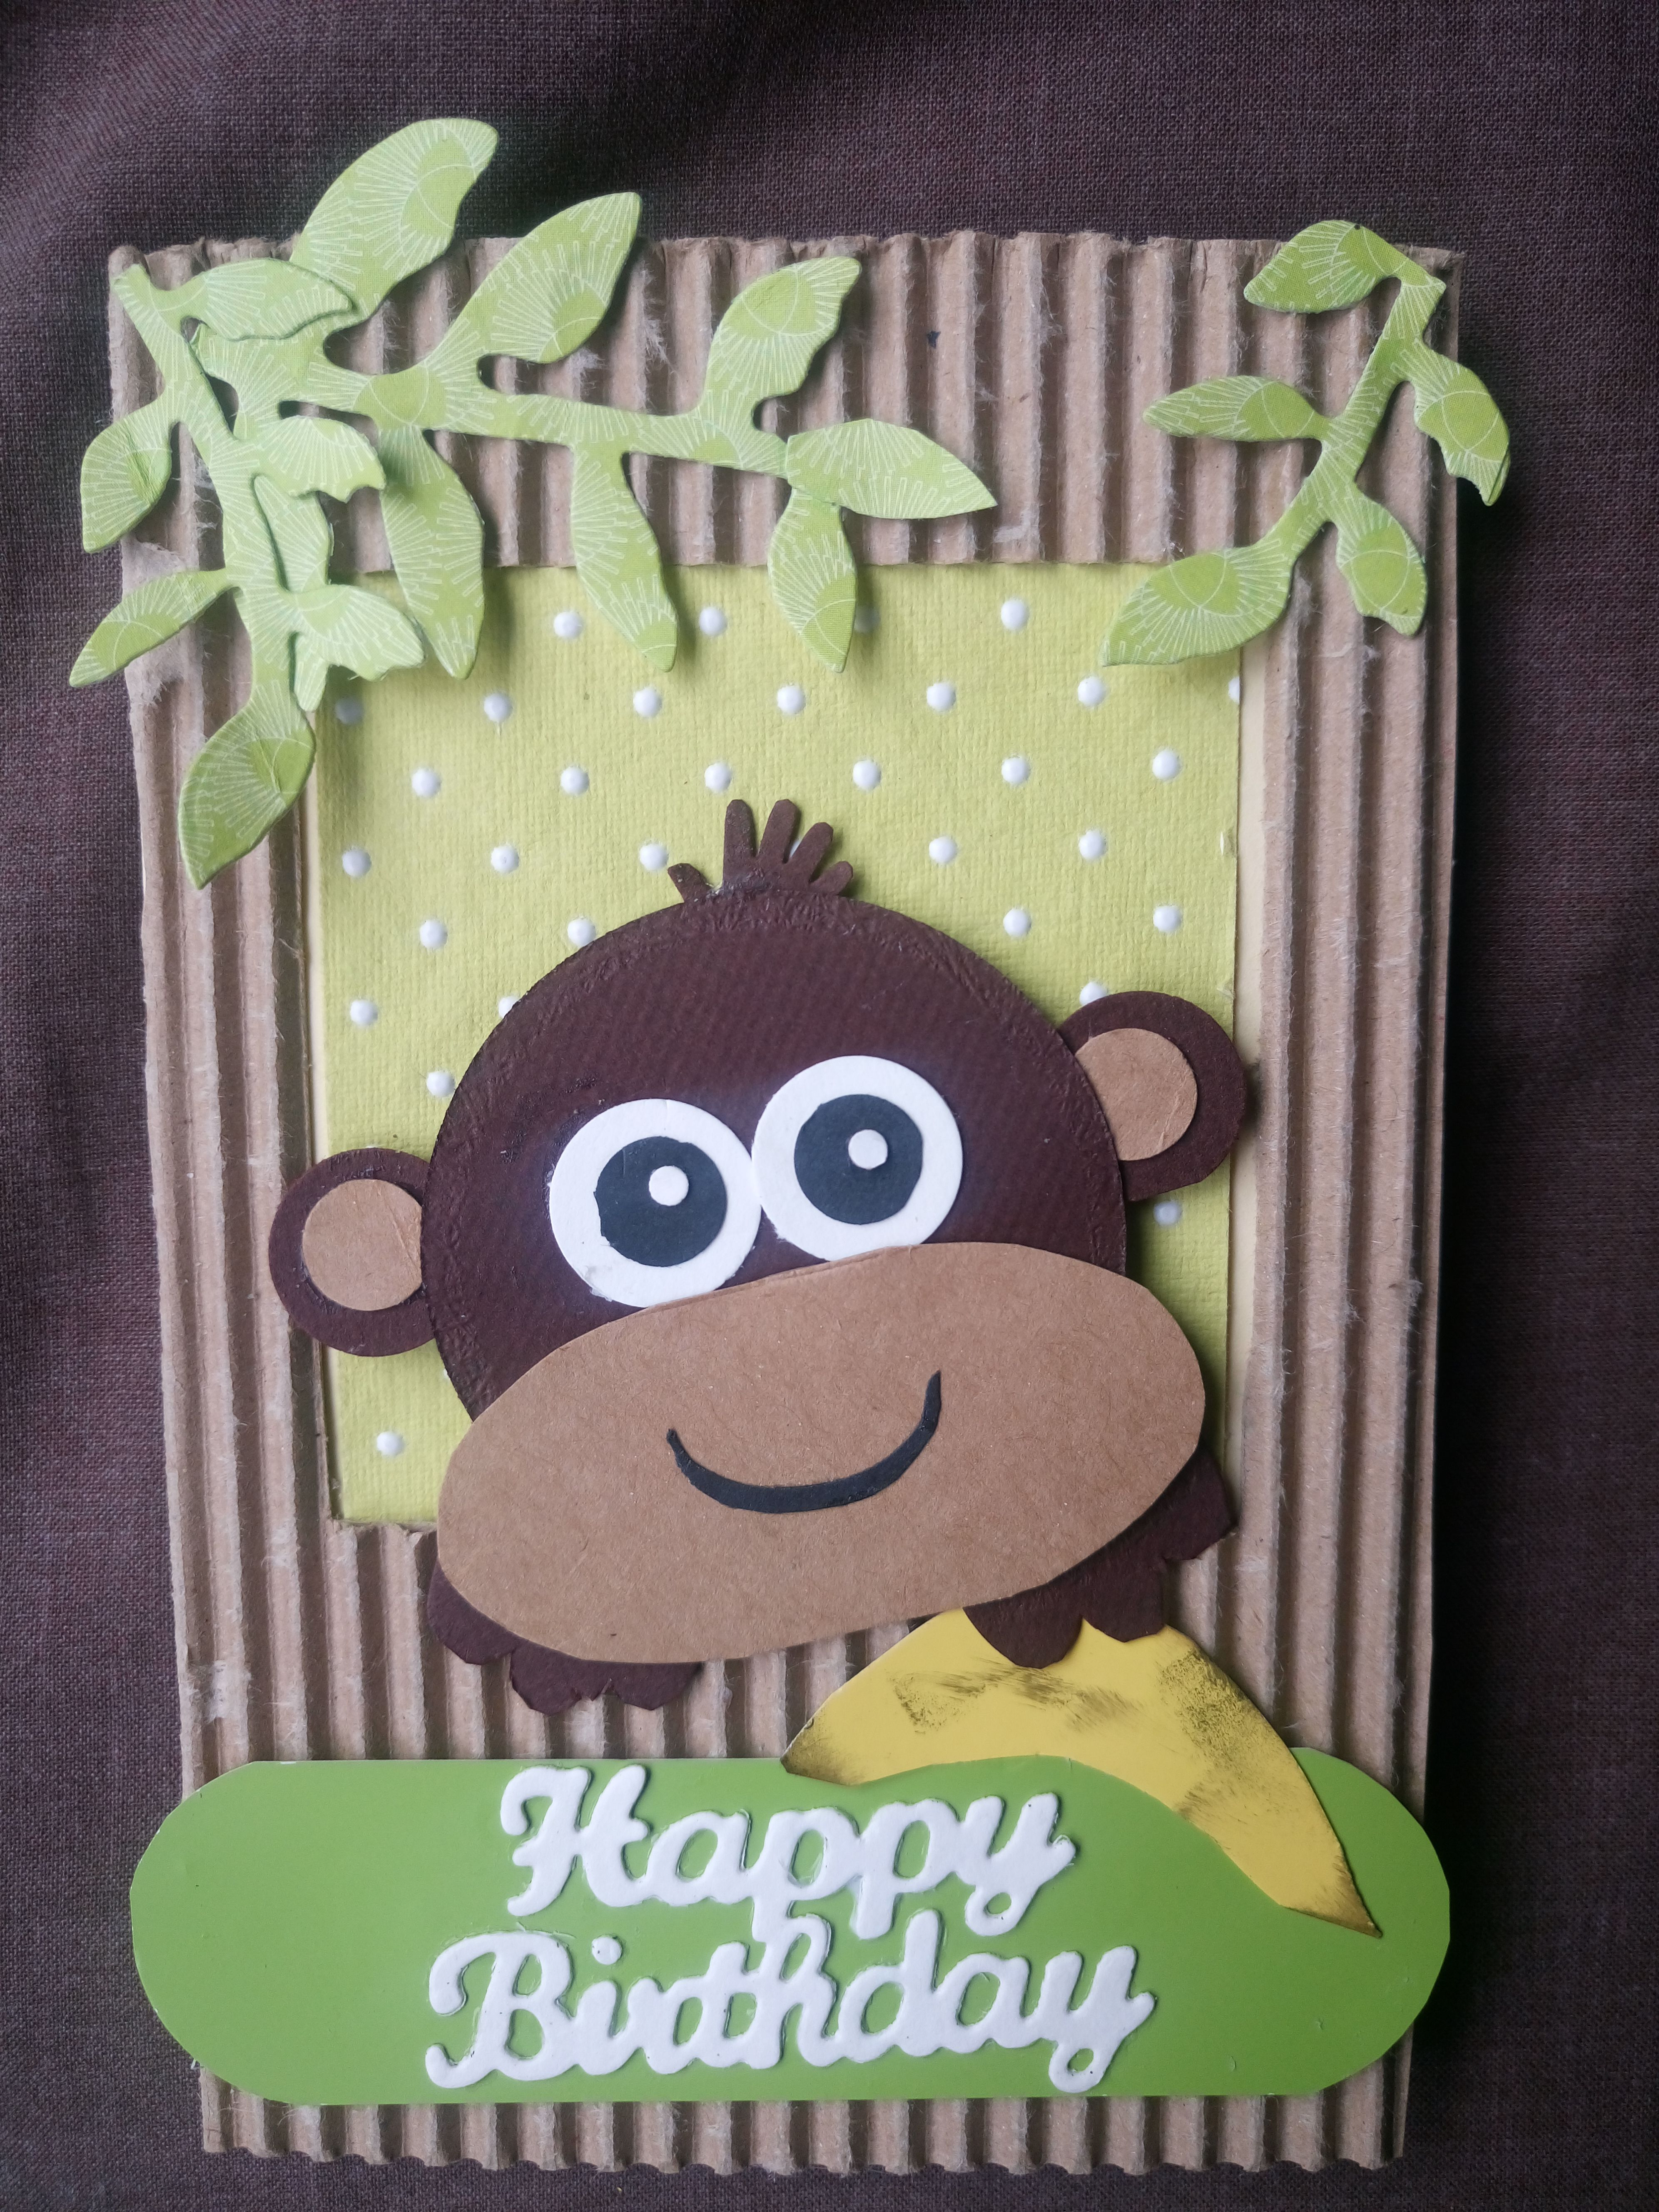 Monkey With Banana Birthday Card Handmade With Recycled Papers By Michelle Walker Kids Birthday Cards Handmade Birthday Cards Card Making